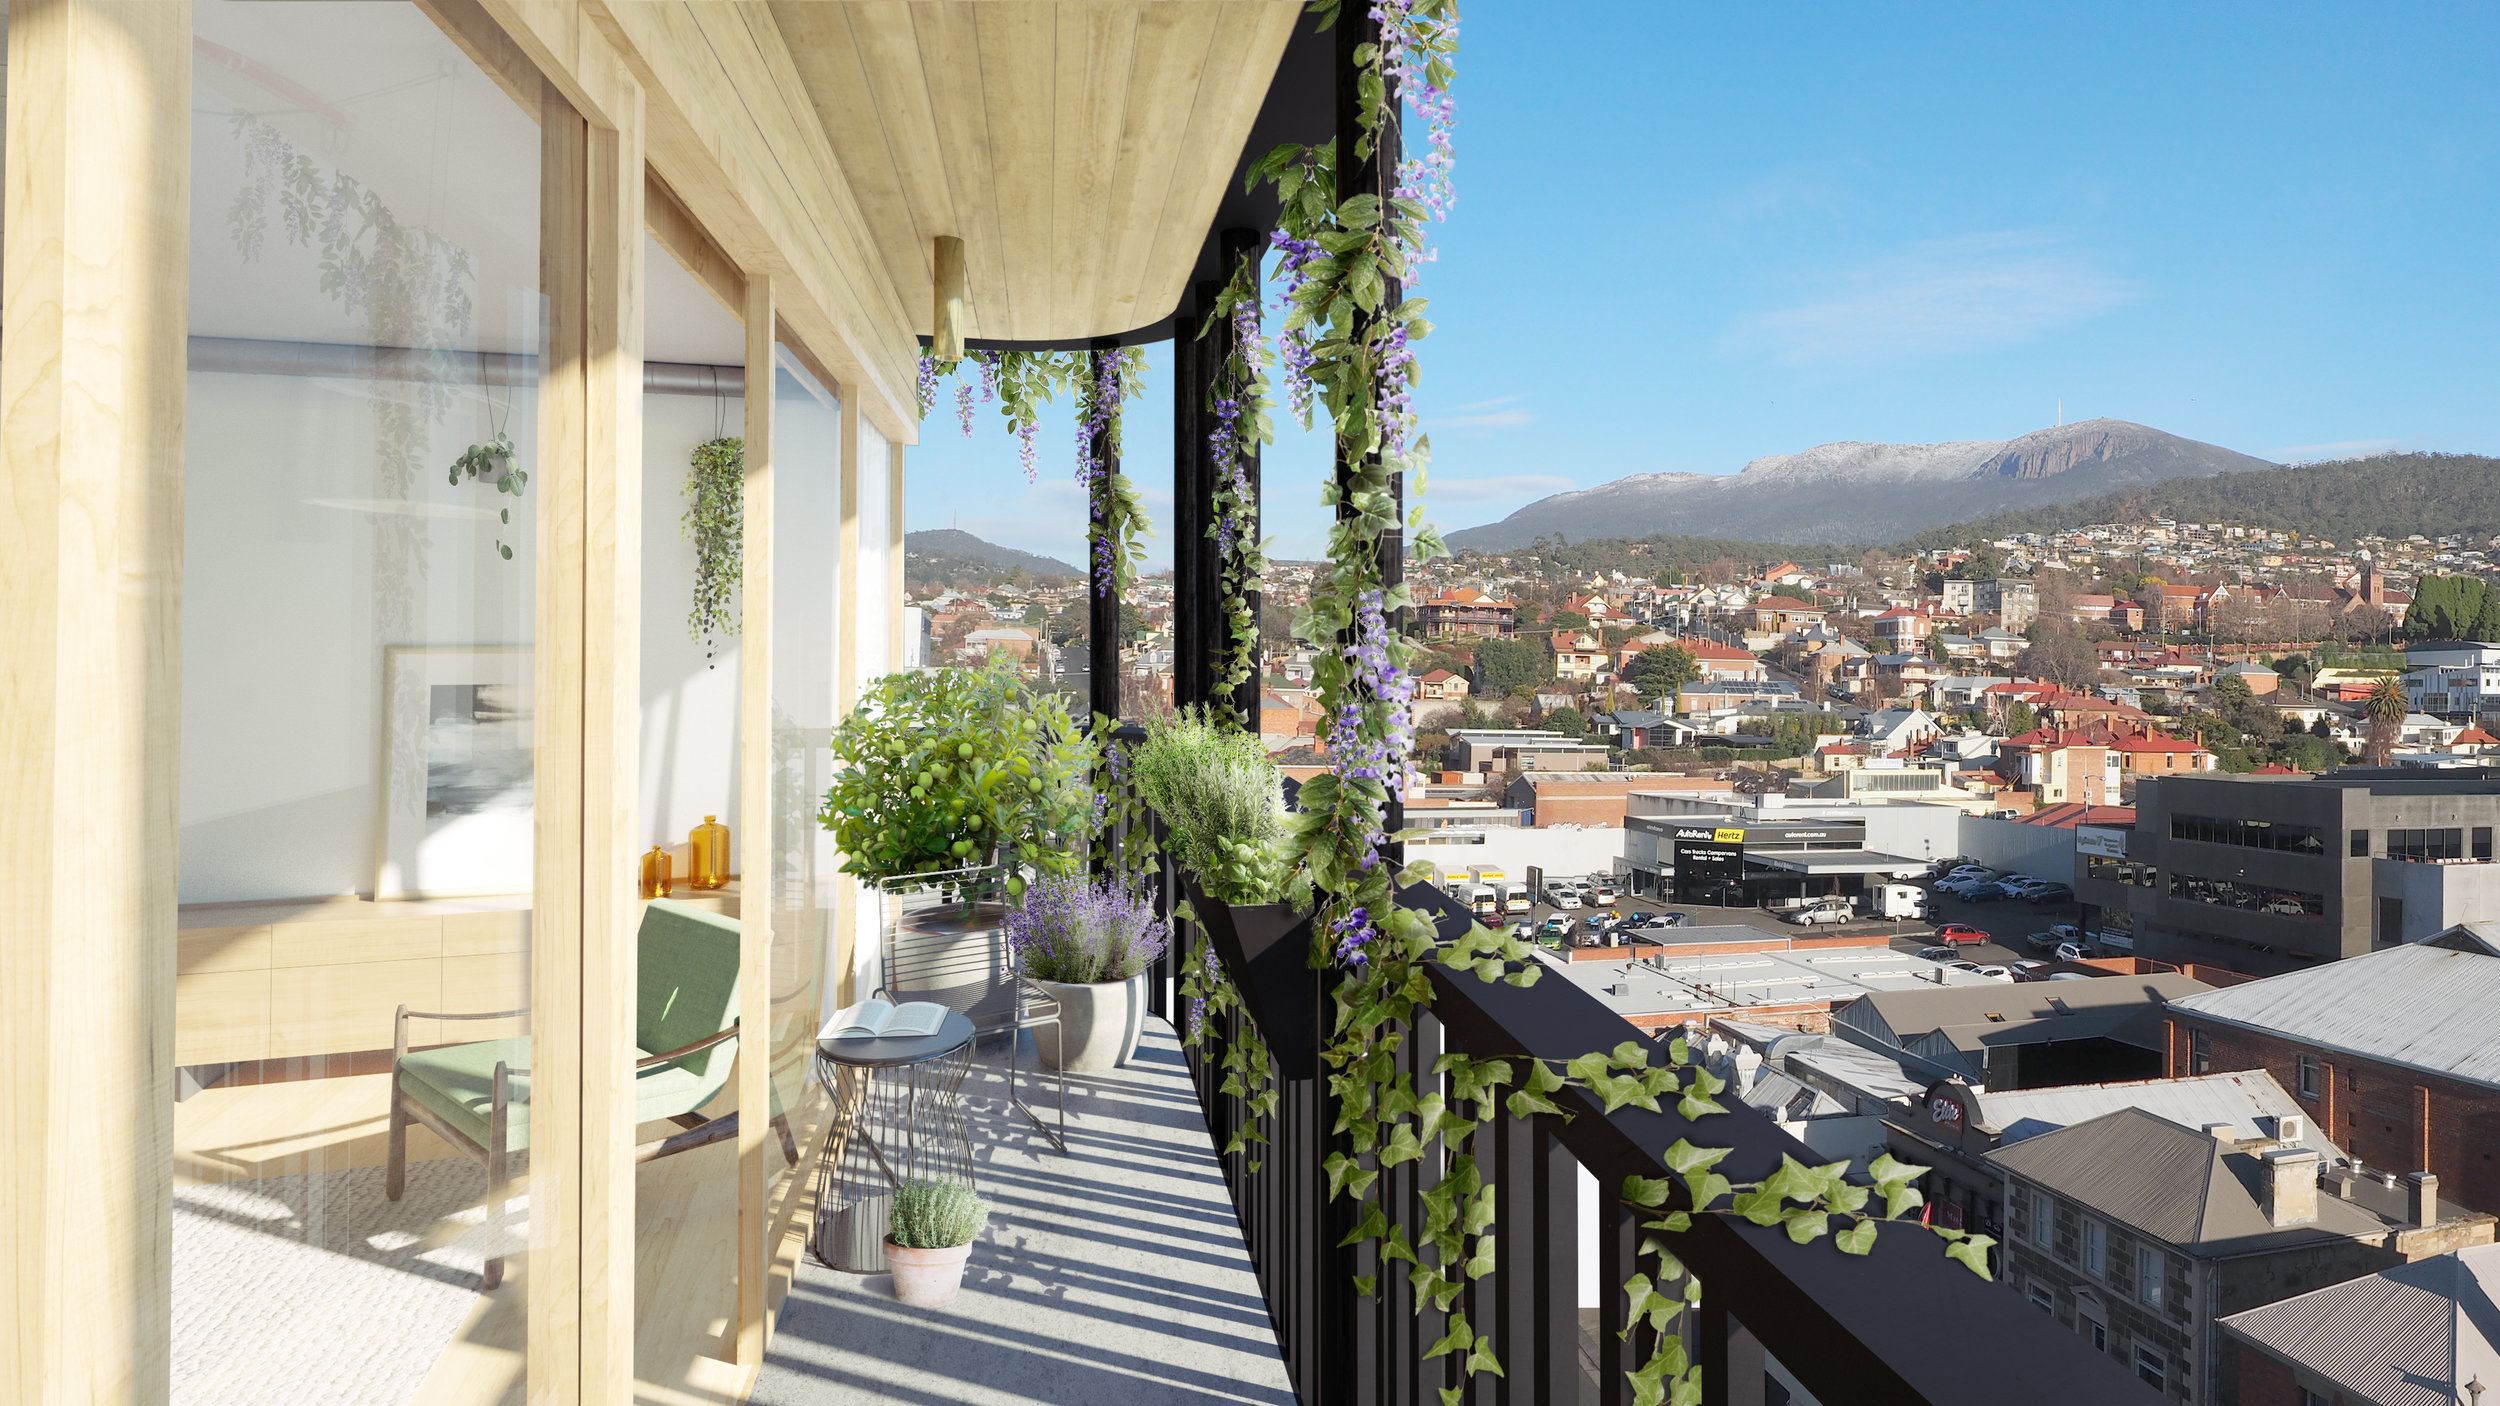 Like its Melbourne counterpart, The Commons Hobart will have an enviable urban location and views that will sweep across the city and the quiet constant of Mount Wellington in the background.